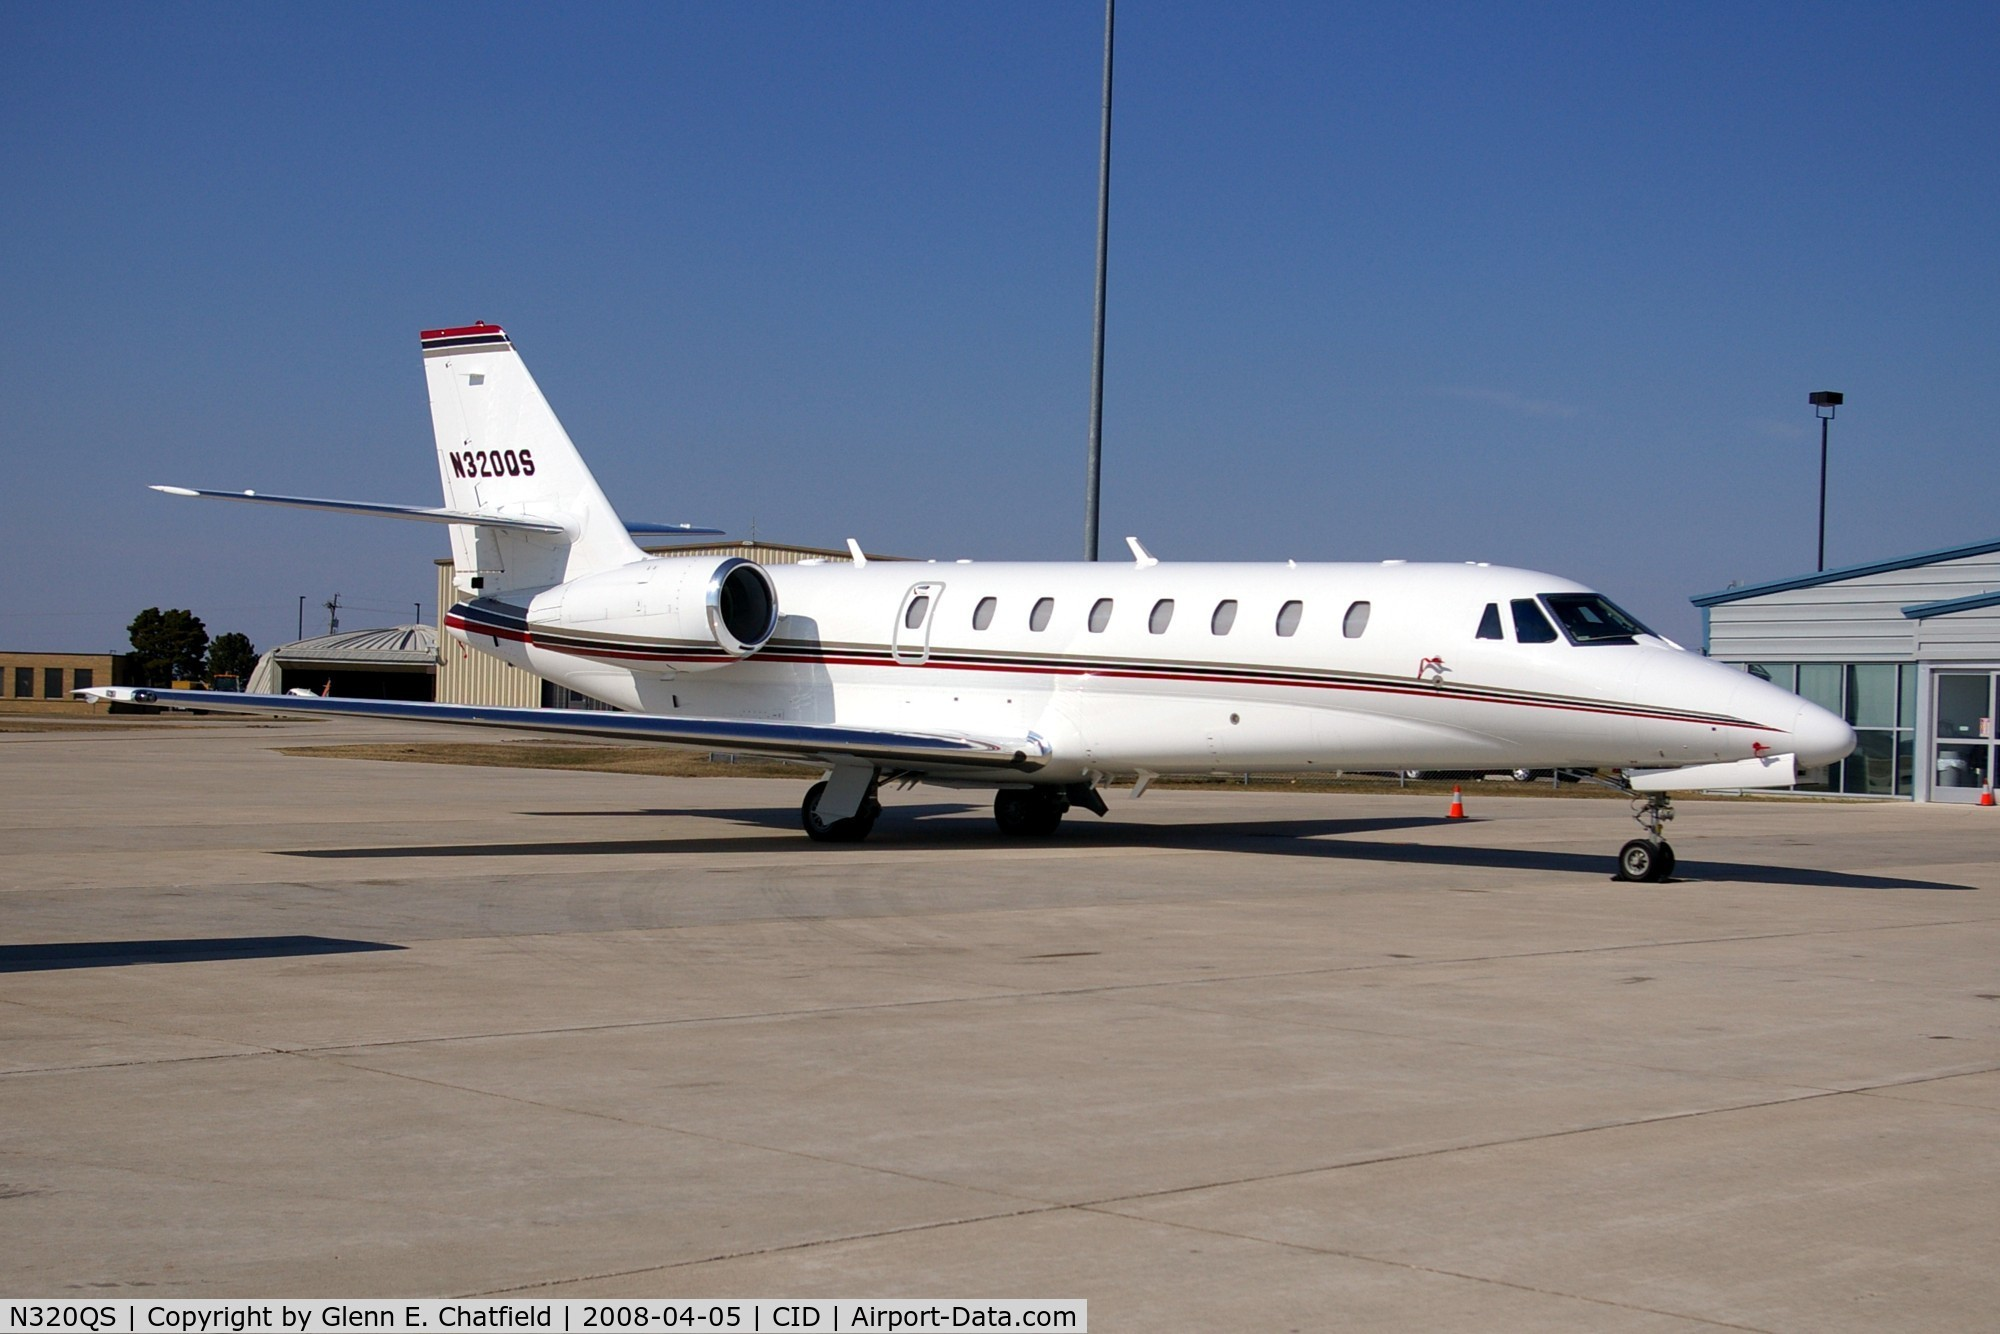 N320QS, 2007 Cessna 680 C/N 680-0169, Executive Jet 320 at Landmark